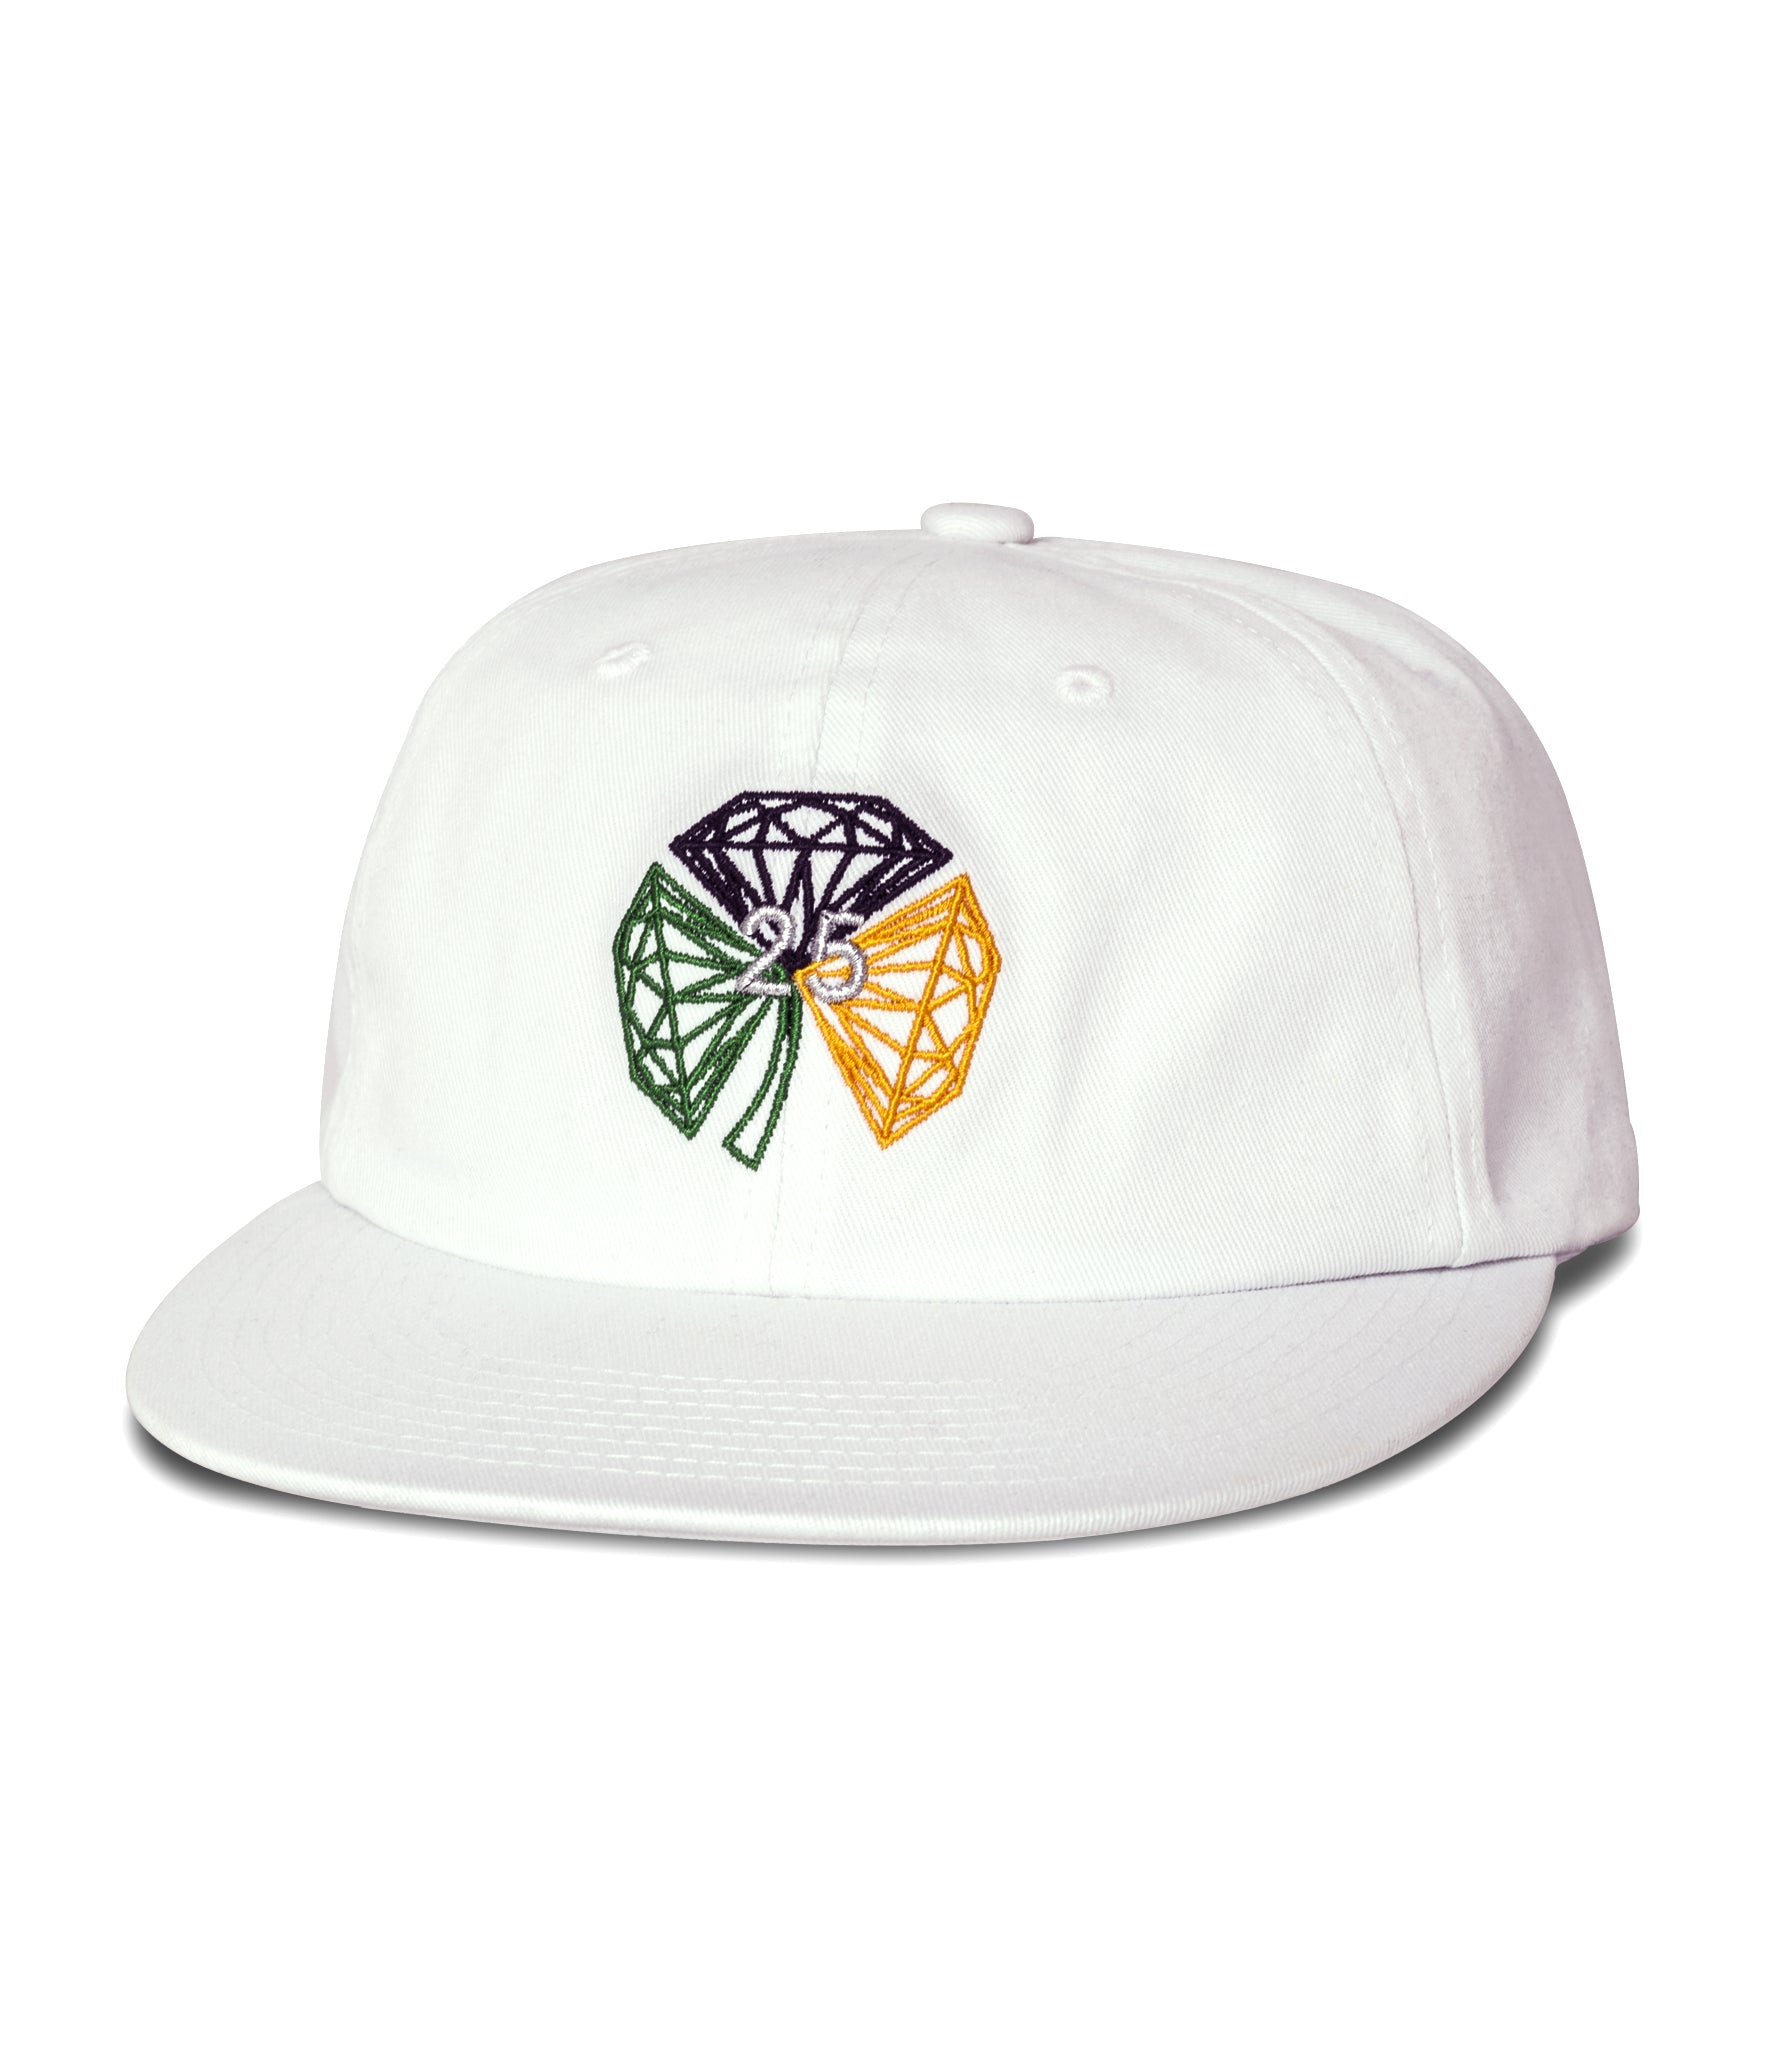 cheaper a5731 782cf H.O.P x Diamond Snapback Hat